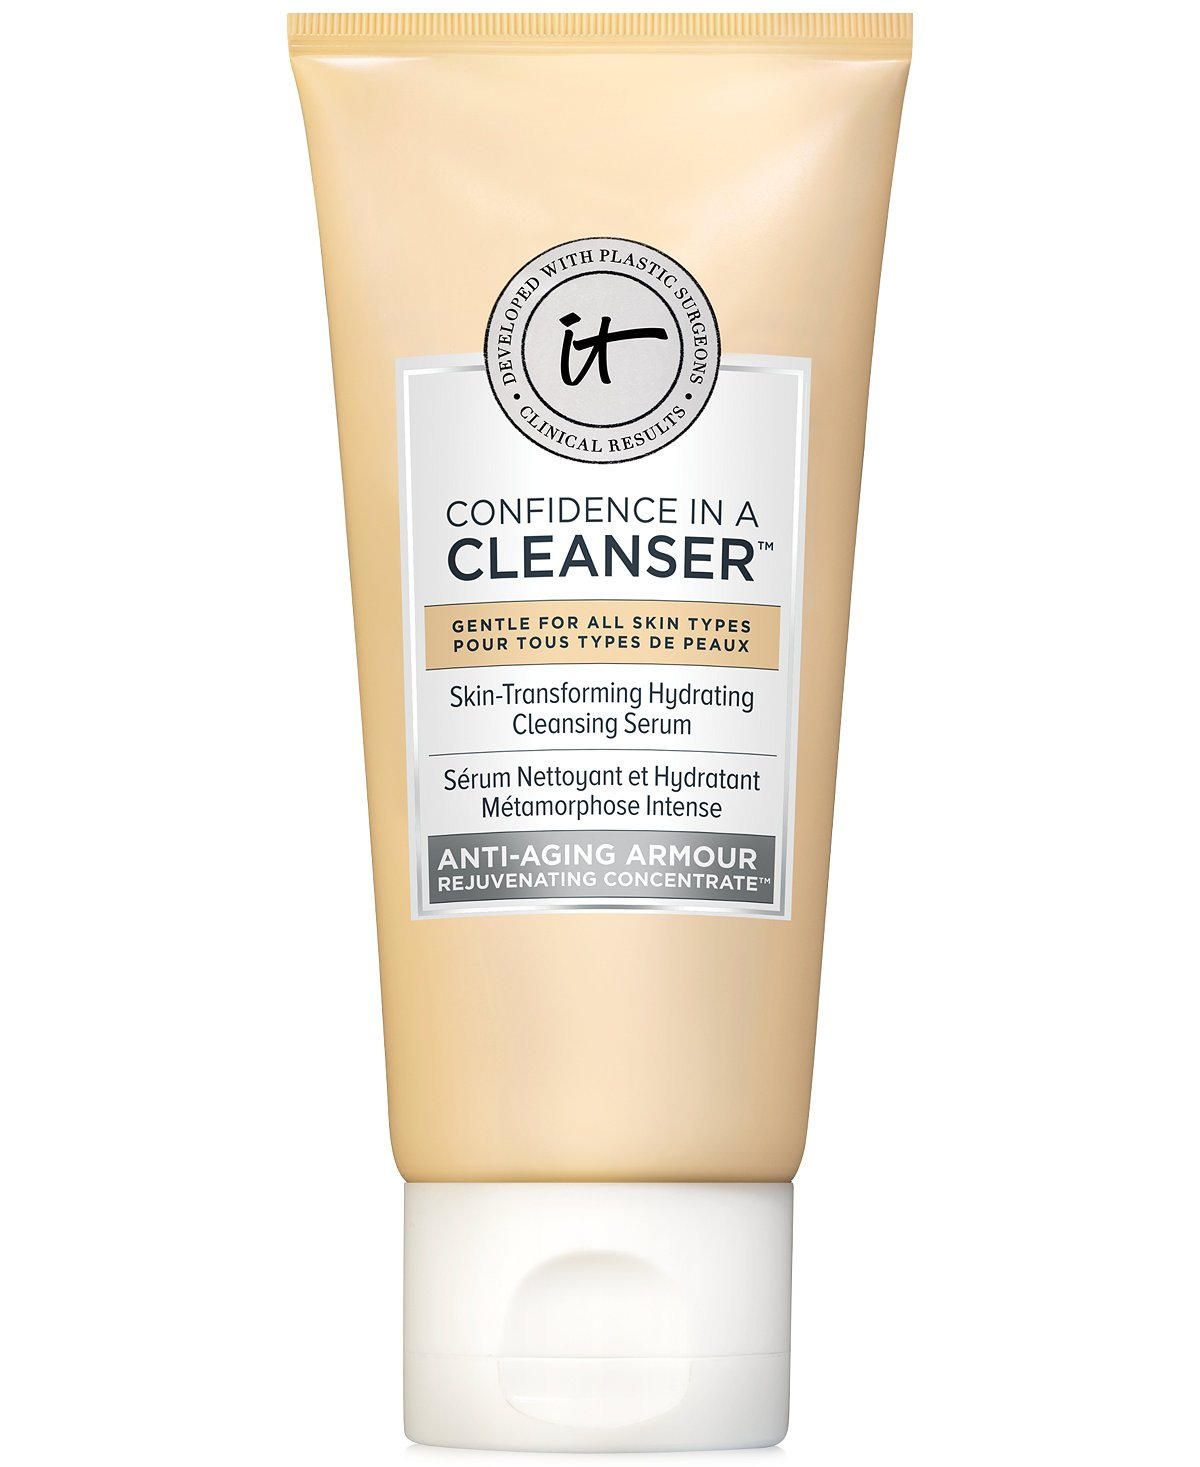 It Cosmetics Confidence In A Cleanser! Skin Transforming Hydrating Cleansing Serum ~ Trial Size Sample ~ 20 ml/ 0.6 fl oz